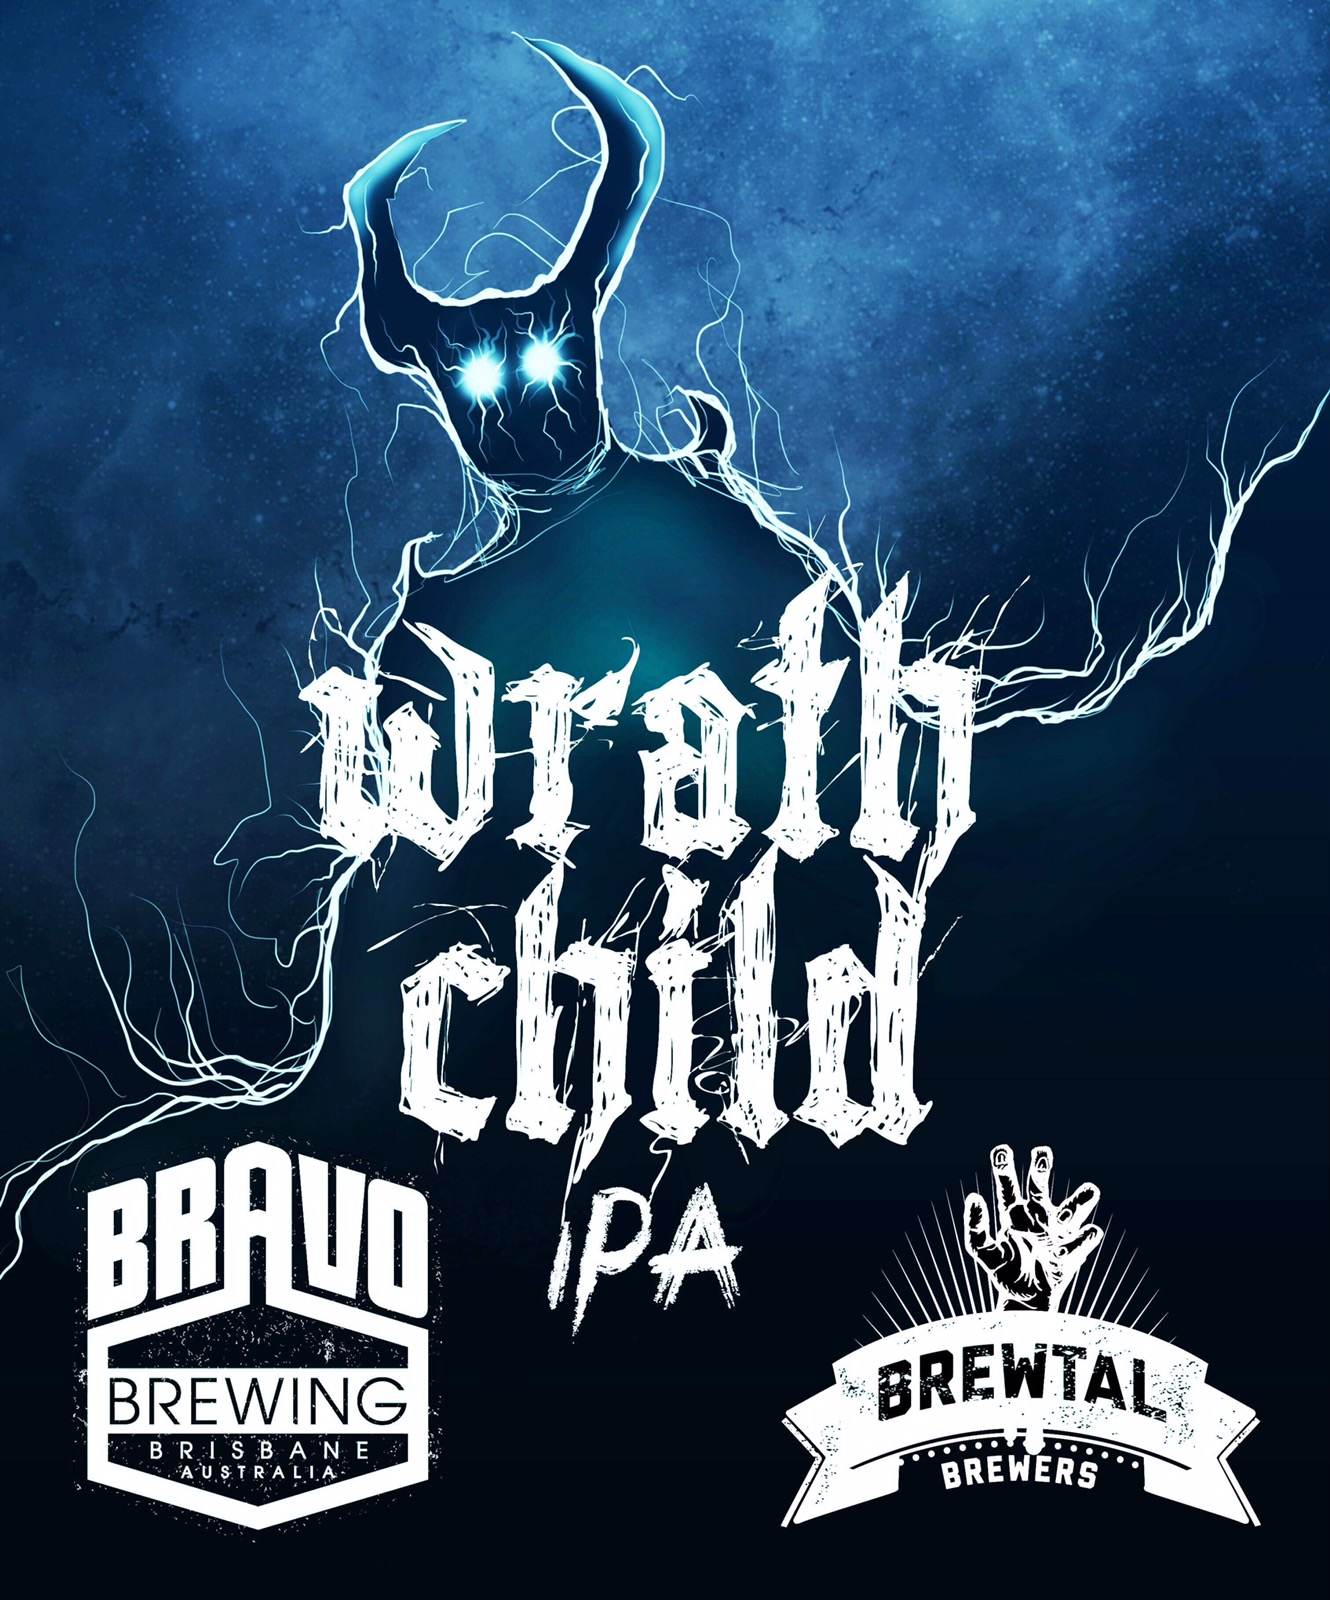 "Wrath Child English IPA - THE STORY: Wrath Child is our Brewsvegas 2019 collaboration with Brewtal Brewers. The beer is named after Iron Maidens 1981 song ""Wrath Child"" as a homage our love of Metal. It was brewed for Mongrel Kitchen's 'Journey to the Maltiverse' event which celebrates malt- the middle child of beer ingredients.THE FLAVOUR PROFILE: Wrath Child is a British- style, malt forward IPA. Brewed using specialty Ethiopian Black Barley and Heritage Ryecorn provided by Voyager Craft Malt, the beer is copper in colour with a slightly sweet biscuit flavour and subtle hoppy aroma which comes from a mix of US (new world) and British (Nobel) hops as well as whole New Zealand hop flowers."